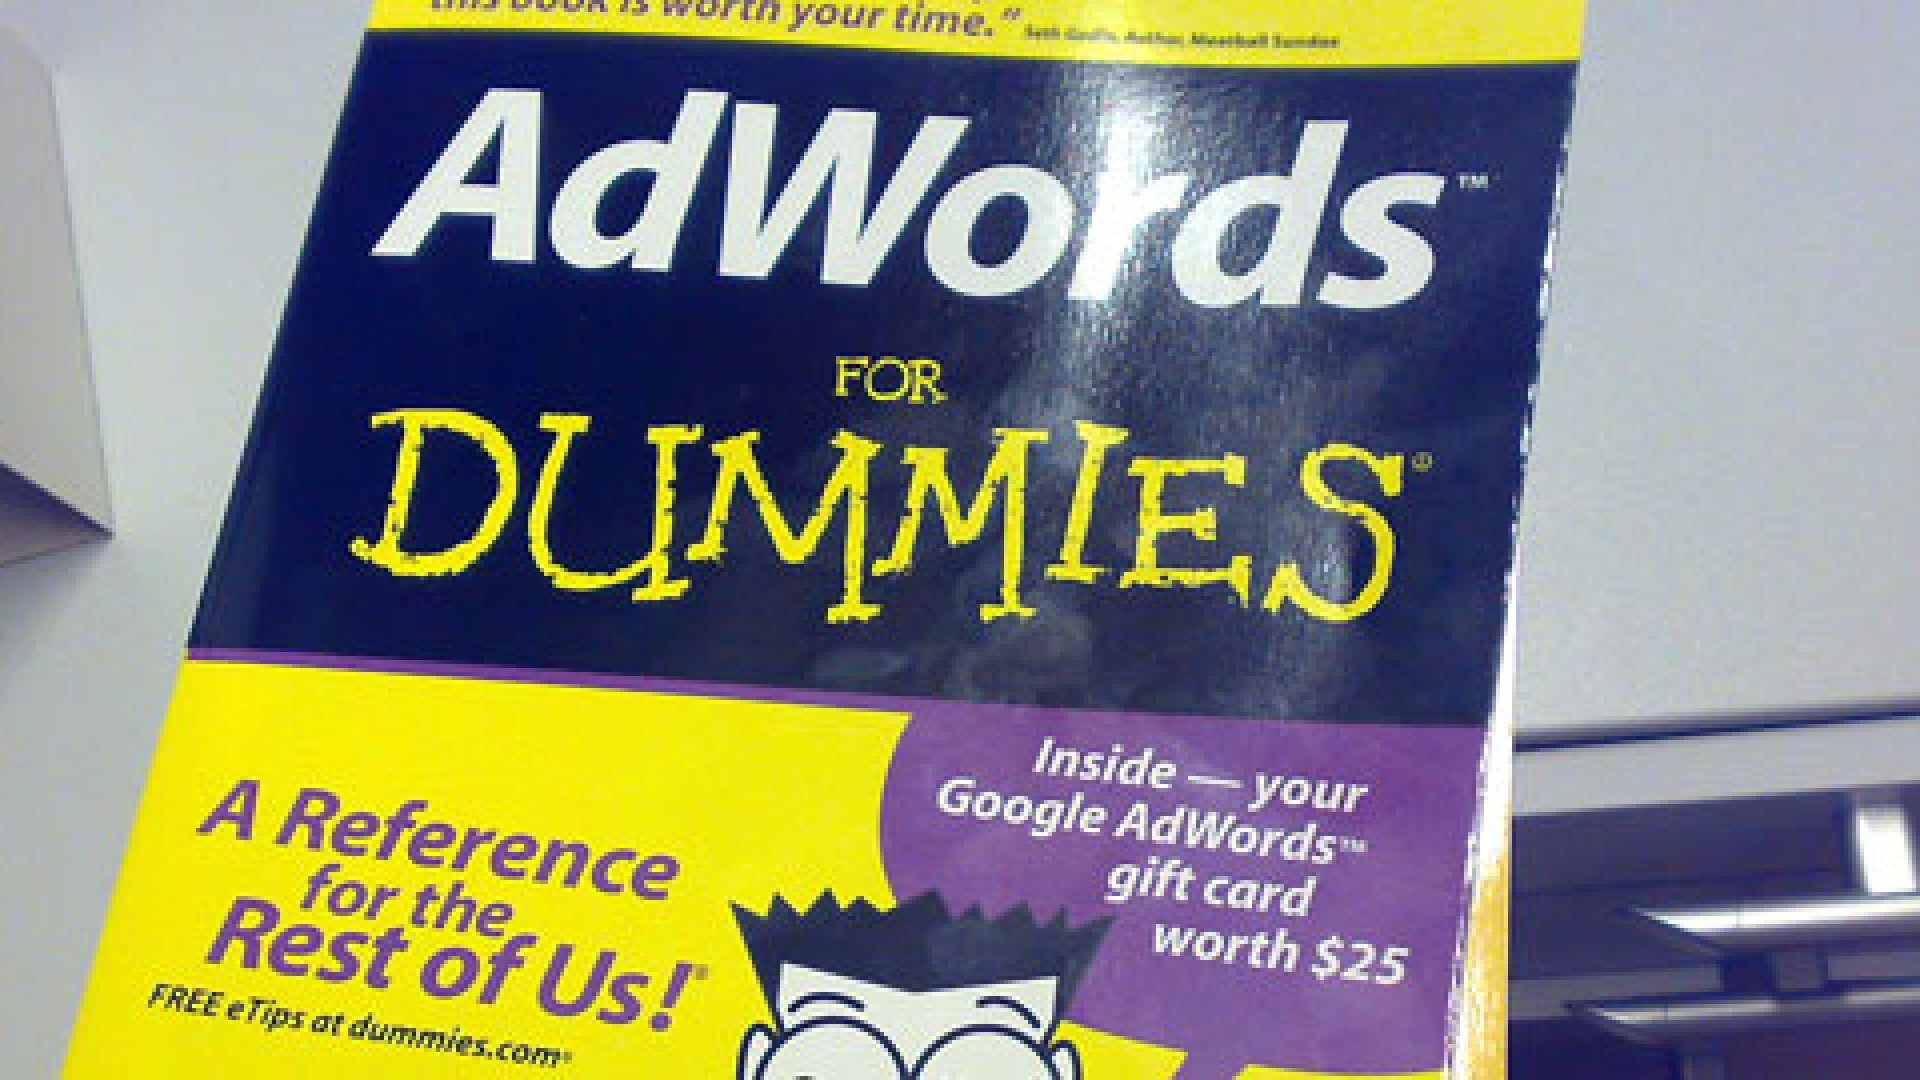 Why Aren't You Using Google AdWords?